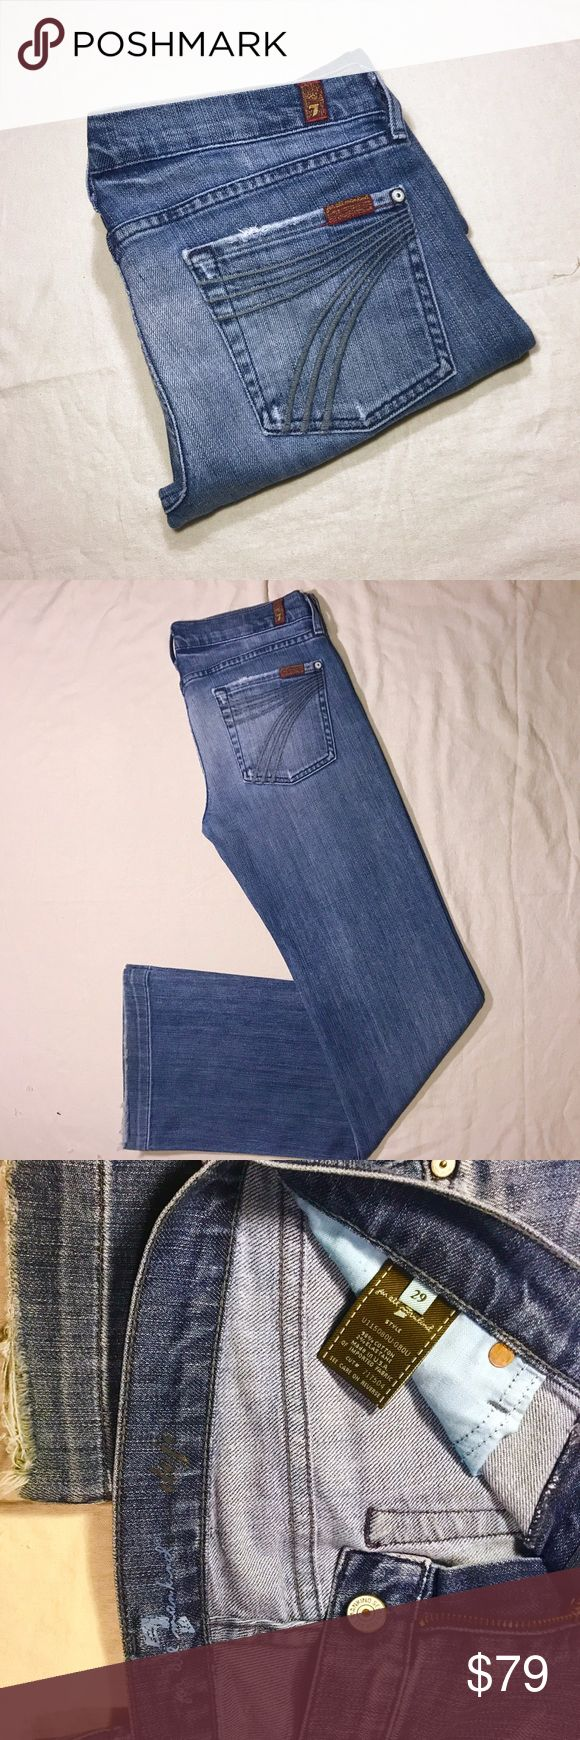 """7 For All Mankind DOJO Jeans - 32x33.5 Beautiful and vibrant, light silky Denim.  7 For All Mankind Dojo Jeans in Nikita.  Wide Leg Trouser - wear them with sneakers or stilettos.  Signature """"7"""" embroidery on back pockets.  Factory distressed, with a vintage fade and """"7"""" whiskering.  Size 29, actual measurements are (approx): waist 32"""" rise 8"""" inseam 33.5"""". Nikita is made to look worn brand new, but have also had some natural wear from previous use.  Leg cuffs, most notably - see pics…"""